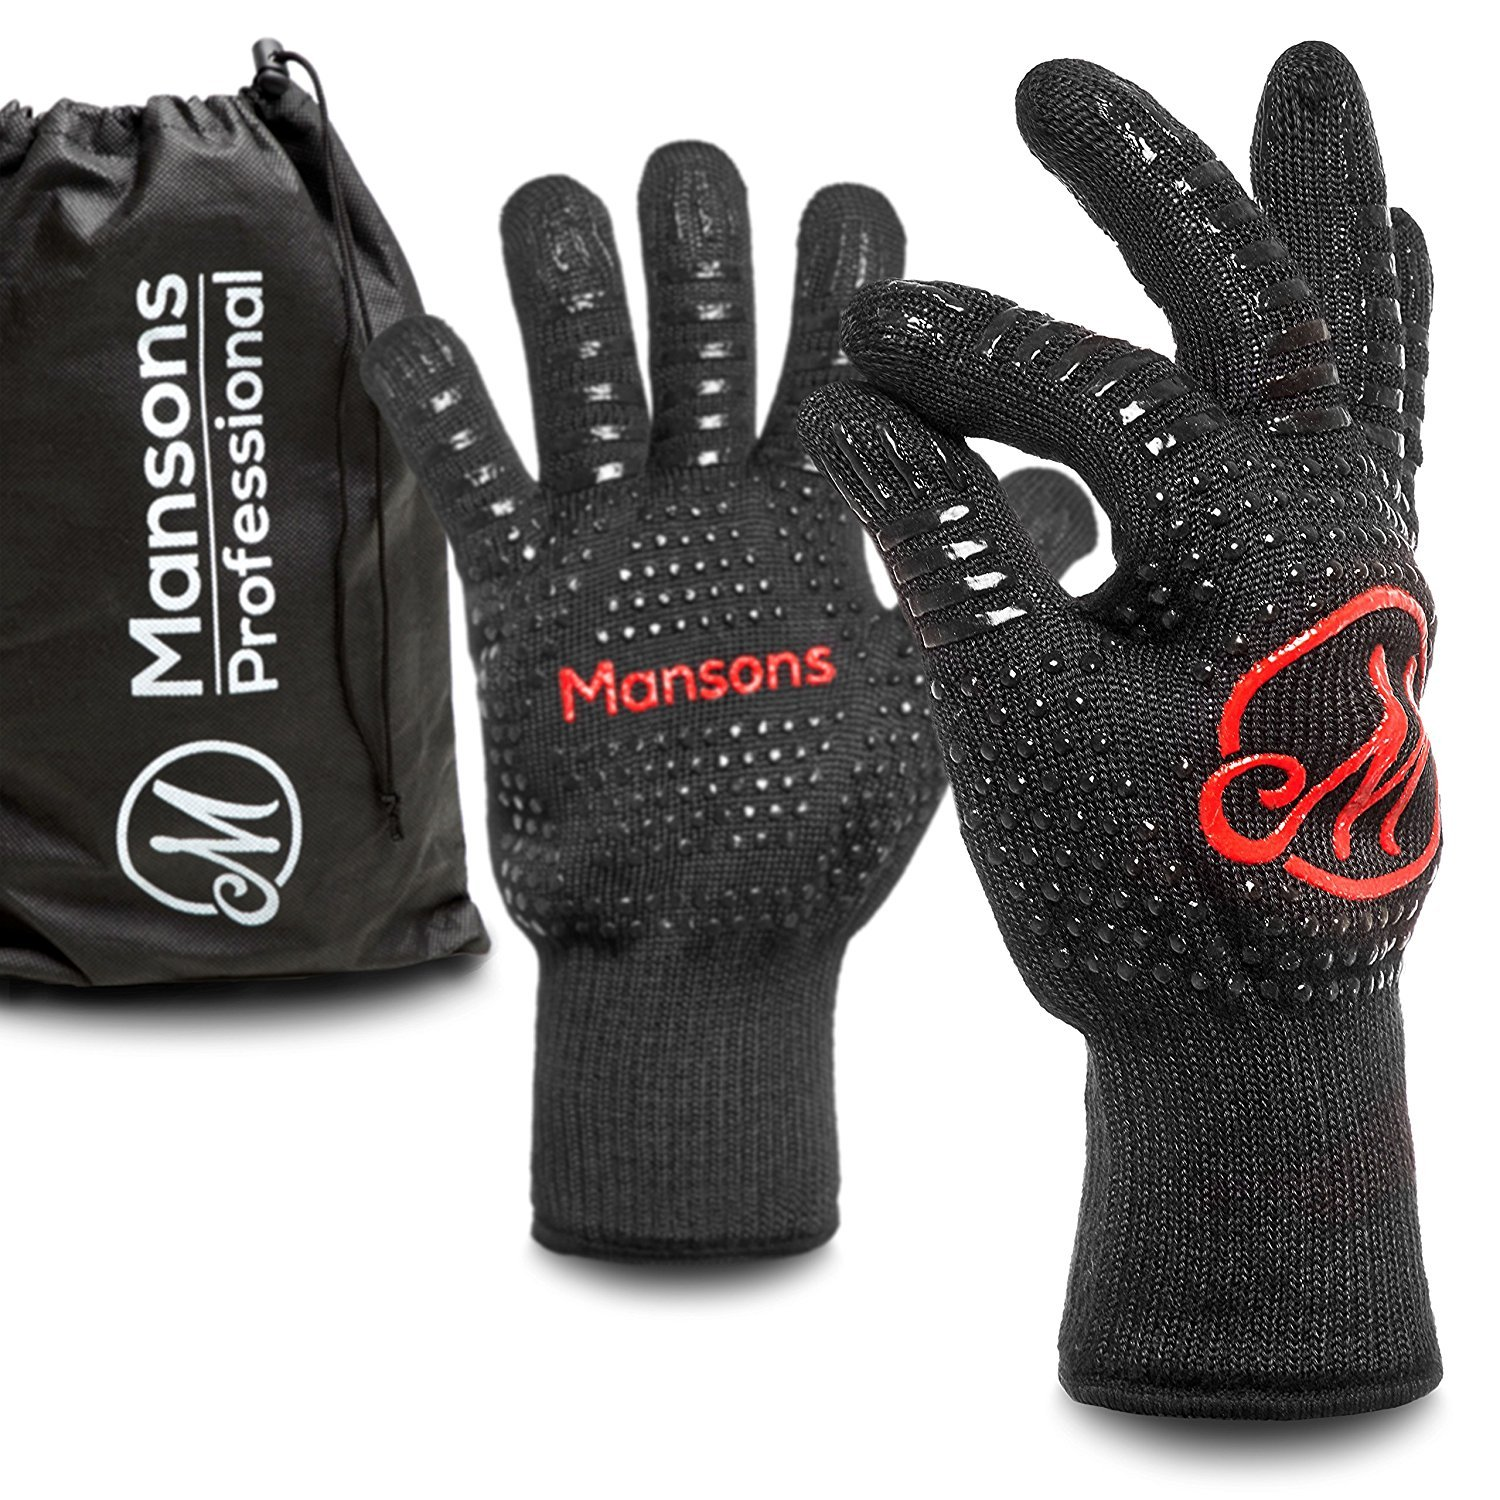 Premium barbecue and oven gloves with storage bag, up to 500°C, 1pair up to 500°C 1pair MANSONS